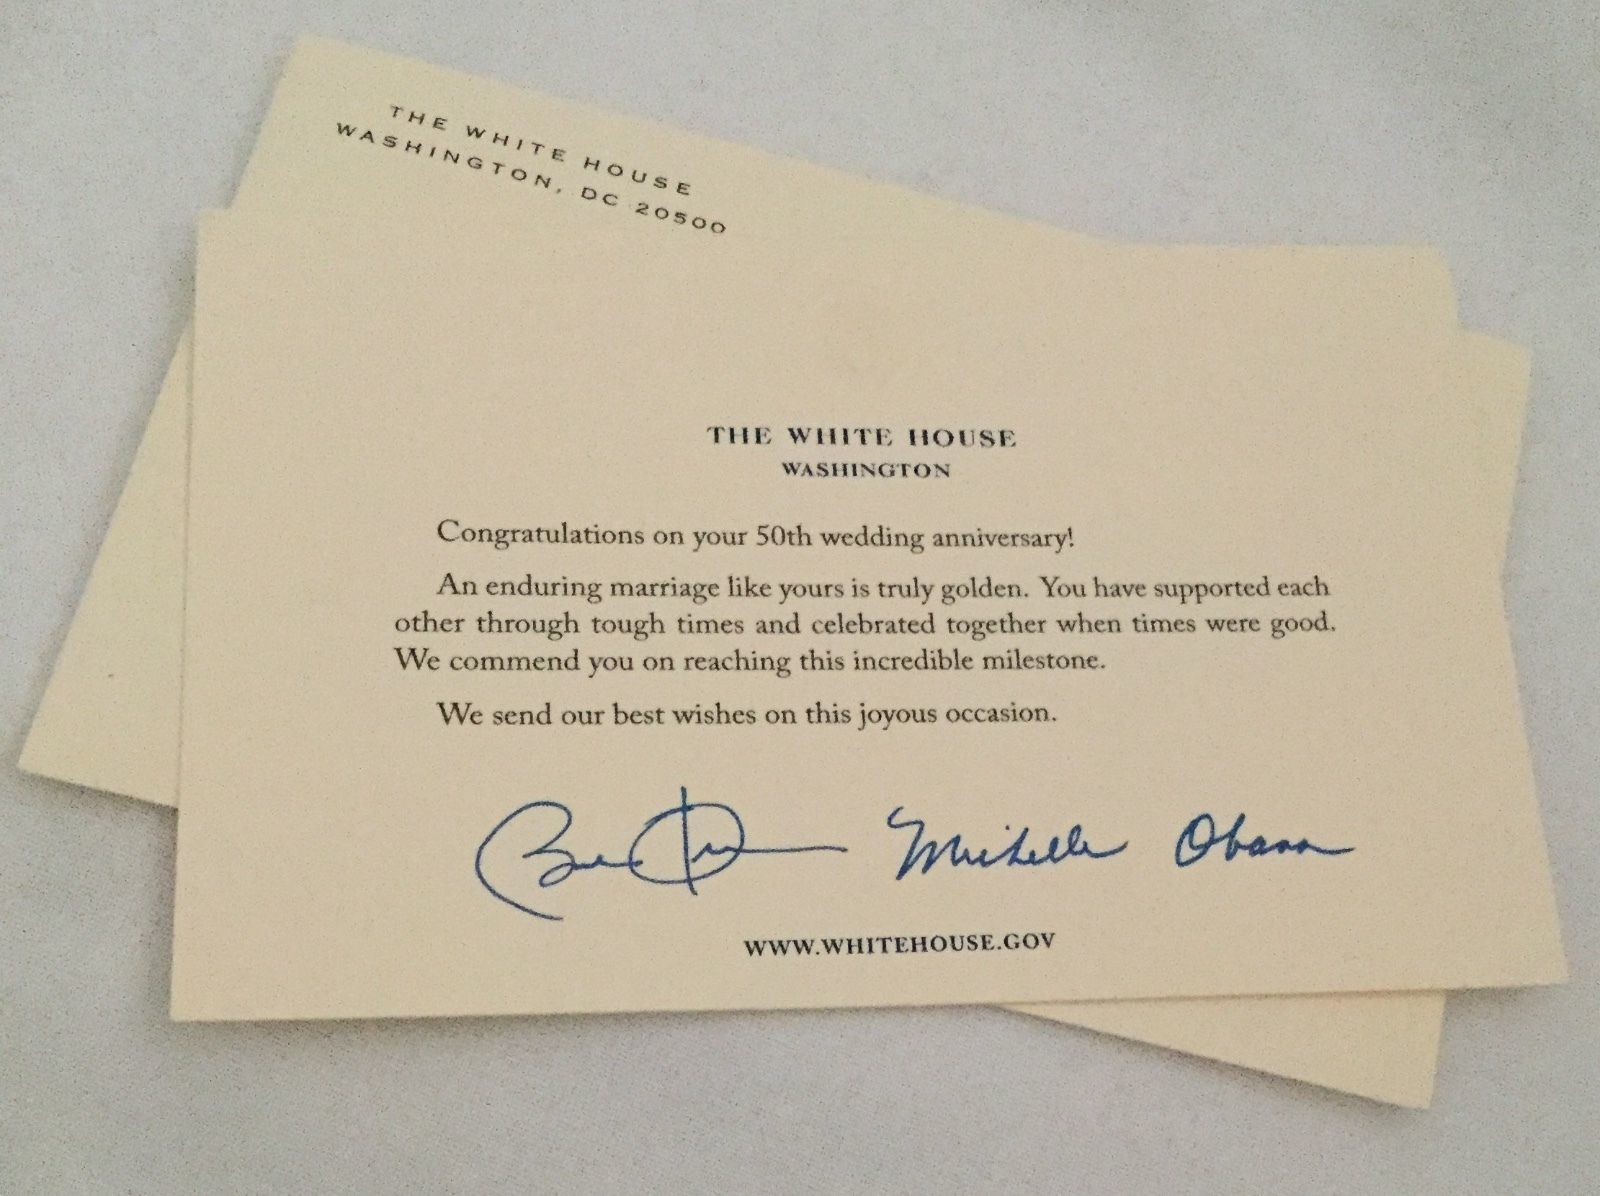 Obama white house 50th anniversary greetings and 50 similar items obama white house 50th anniversary greetings and 50 similar items s l1600 m4hsunfo